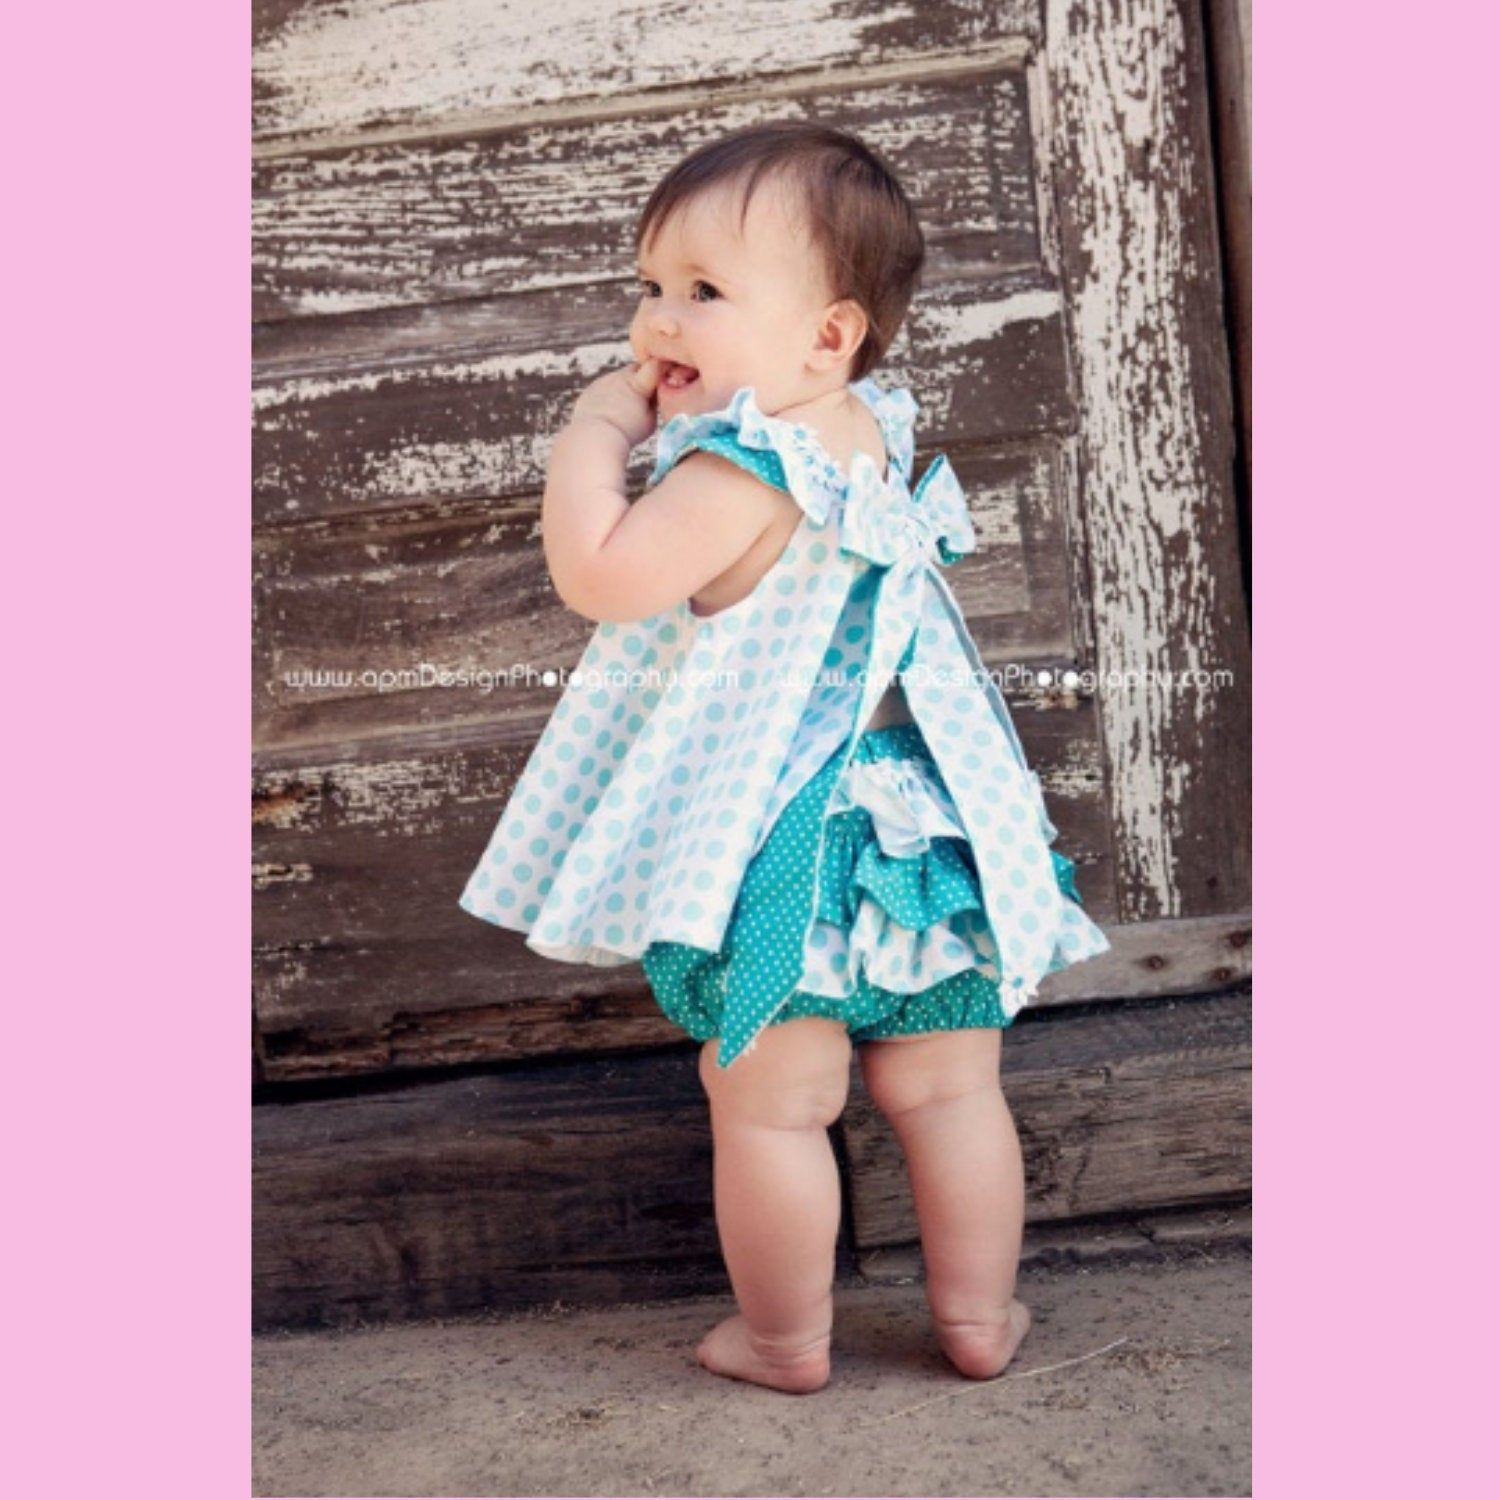 Baby and Girls Dress 1 00 2 4 3 Available in size 000 Handmade